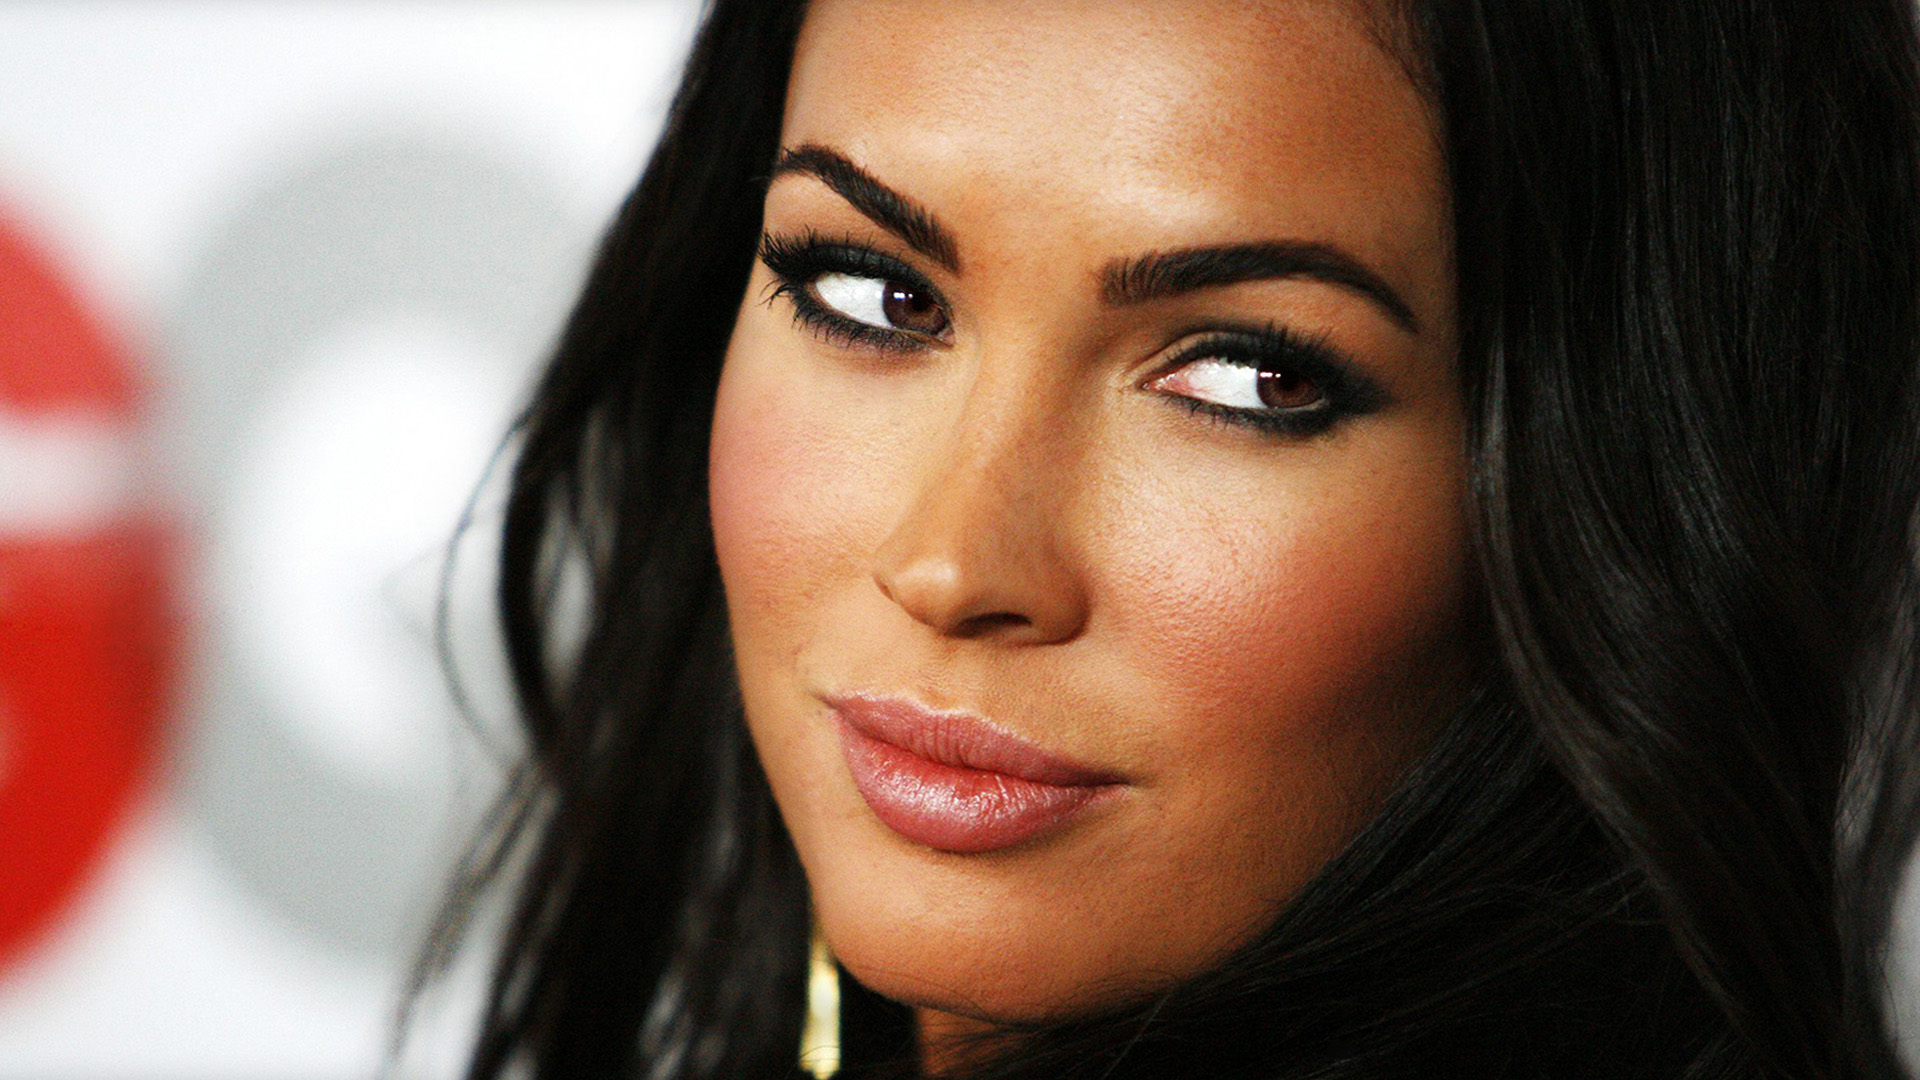 Stunning Megan Fox 20518 1920x1080 px ~ HDWallSource.com Megan Fox Sports